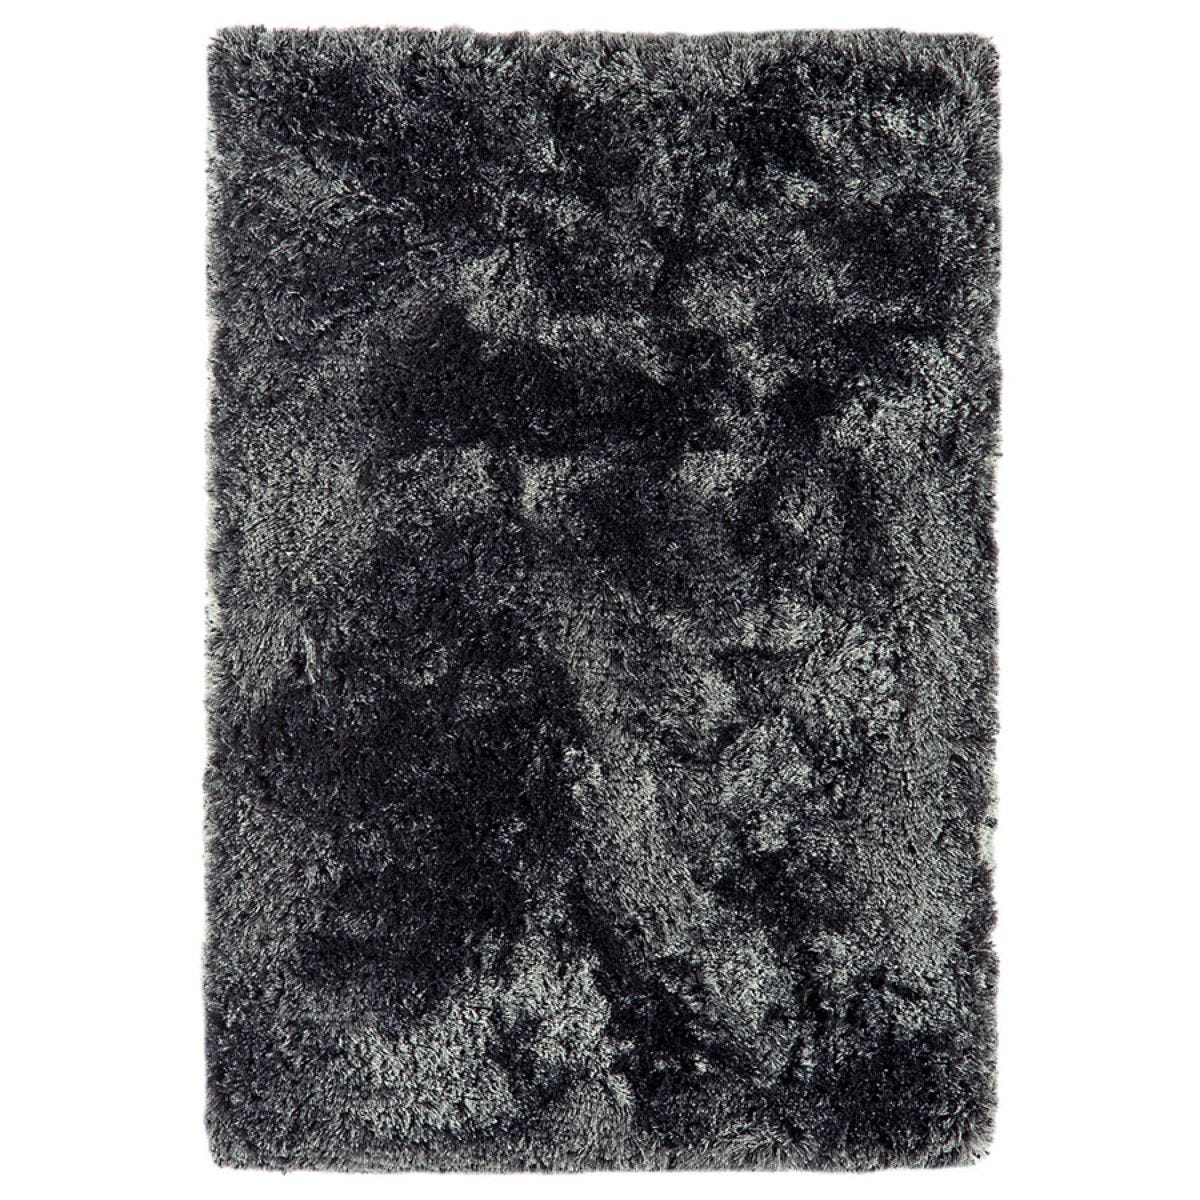 Asiatic Plush Shaggy Rug, 160 x 230cm - Slate